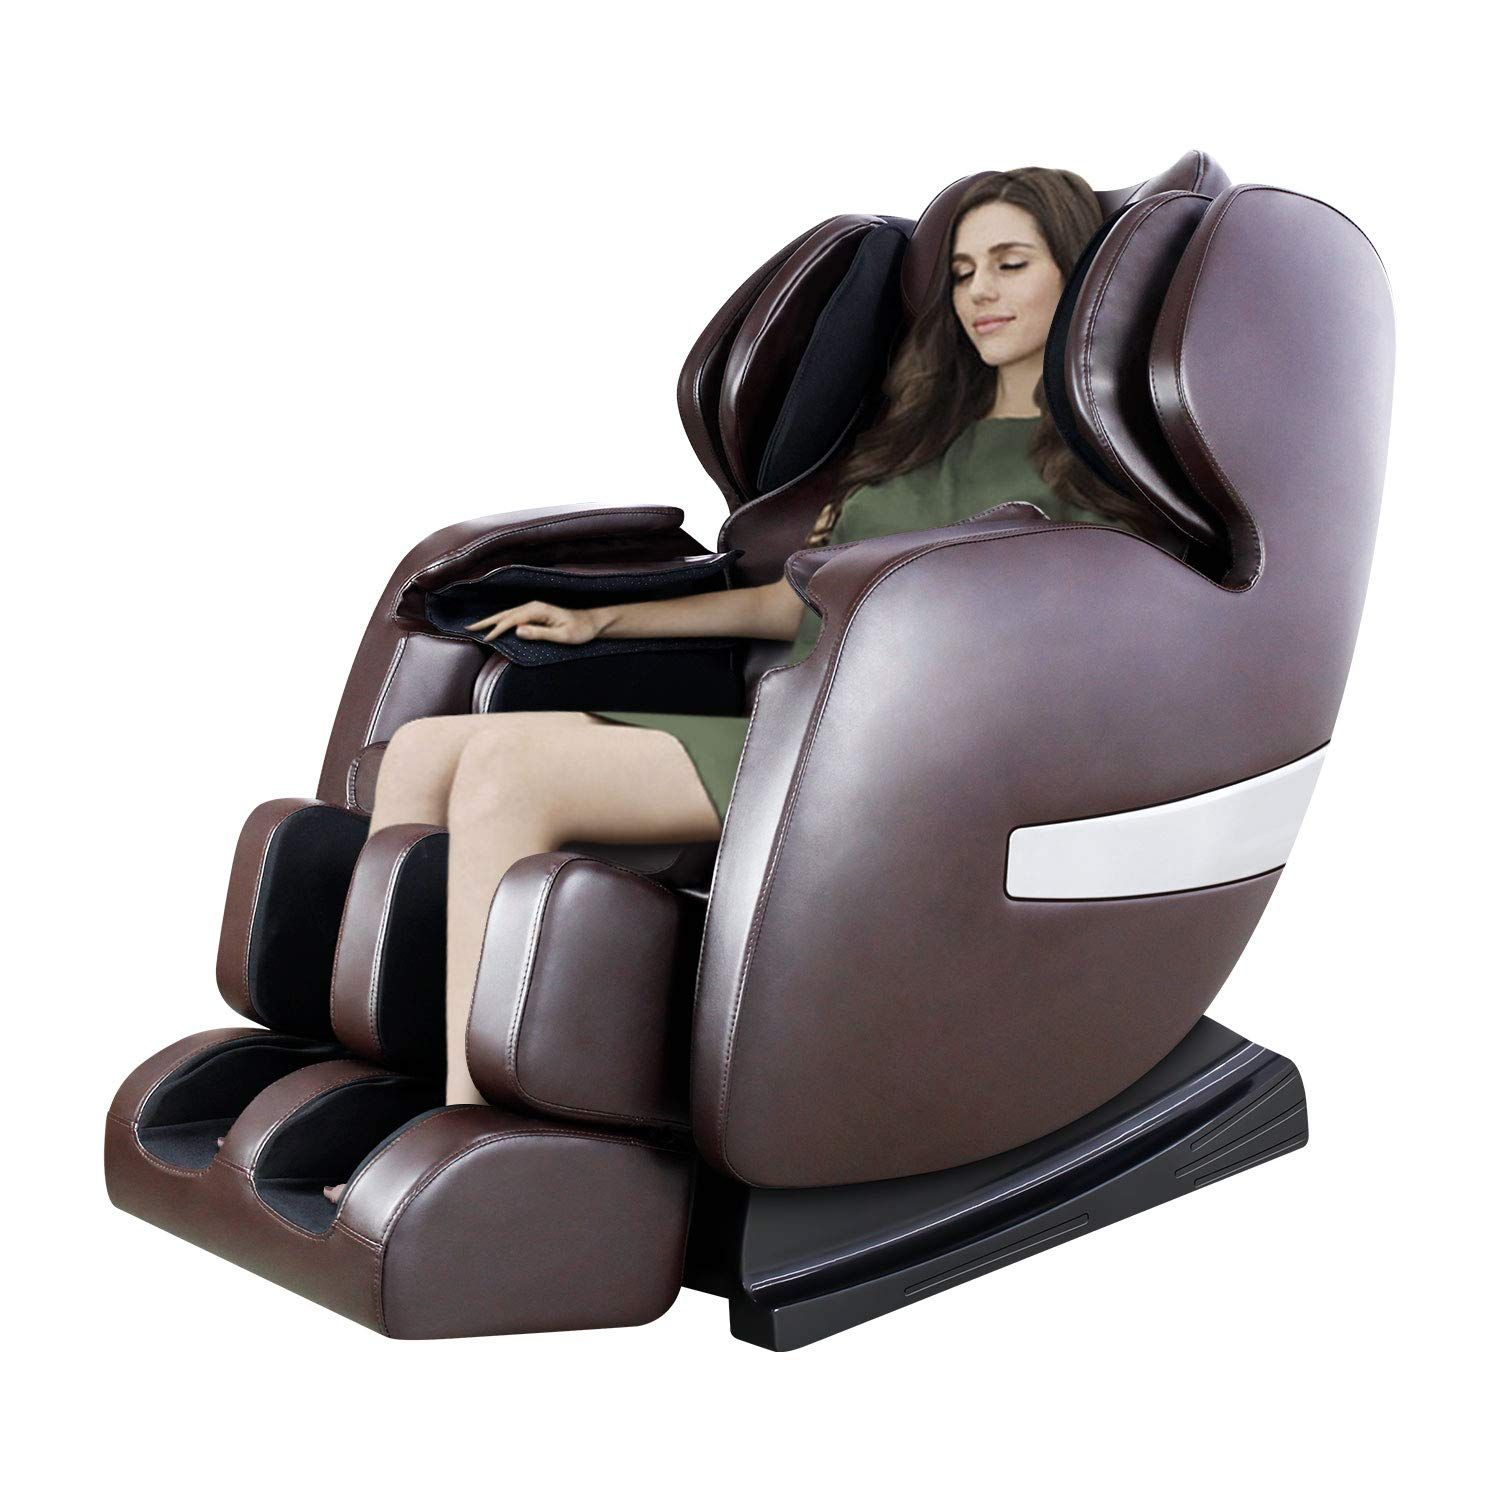 Massage Chair by OOTORI, Deluxe STrack Recliner with 3D